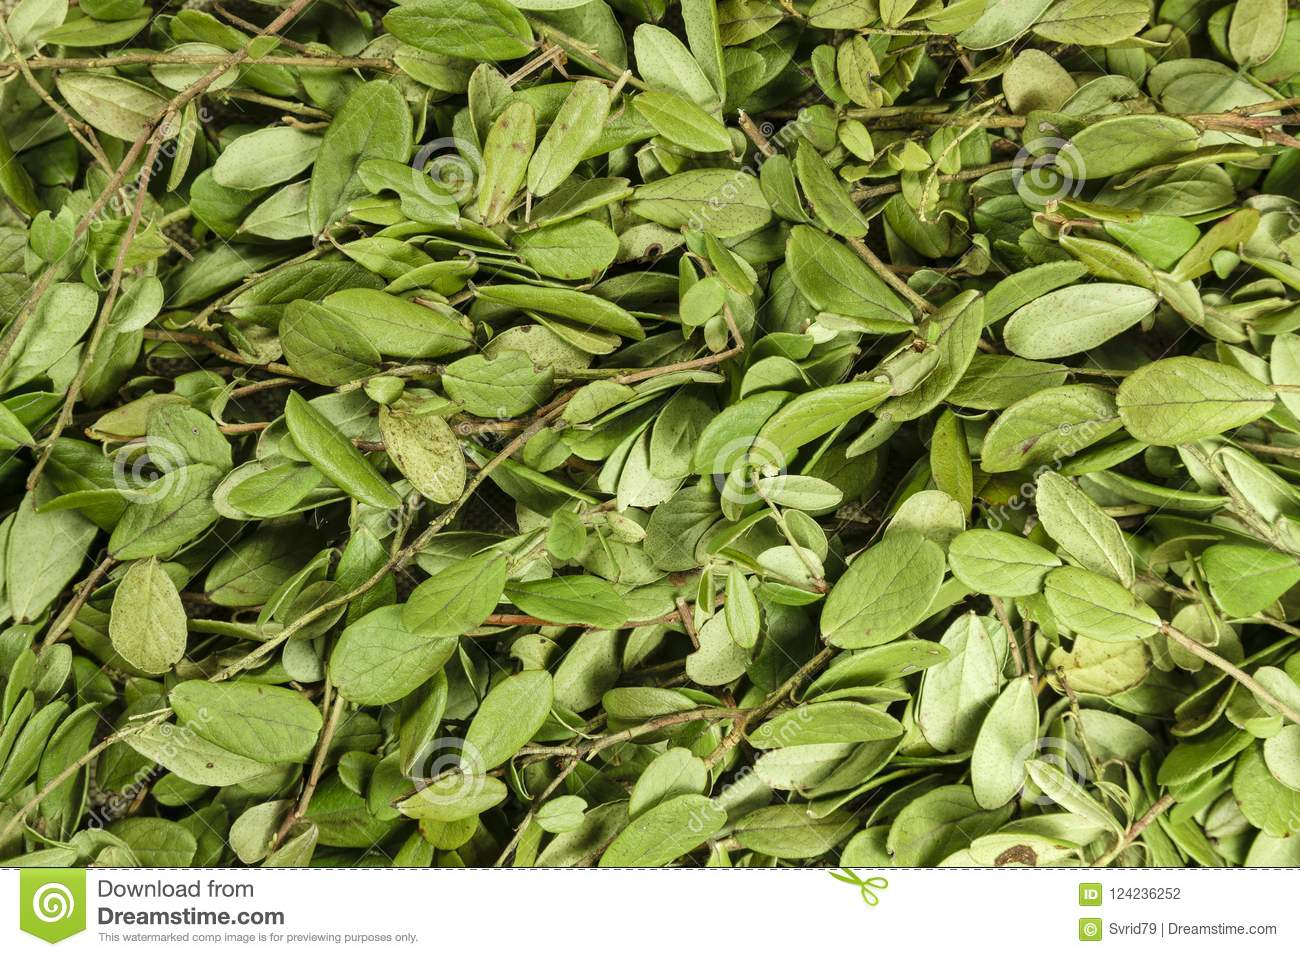 Lingonberry leaves: application in traditional medicine 52